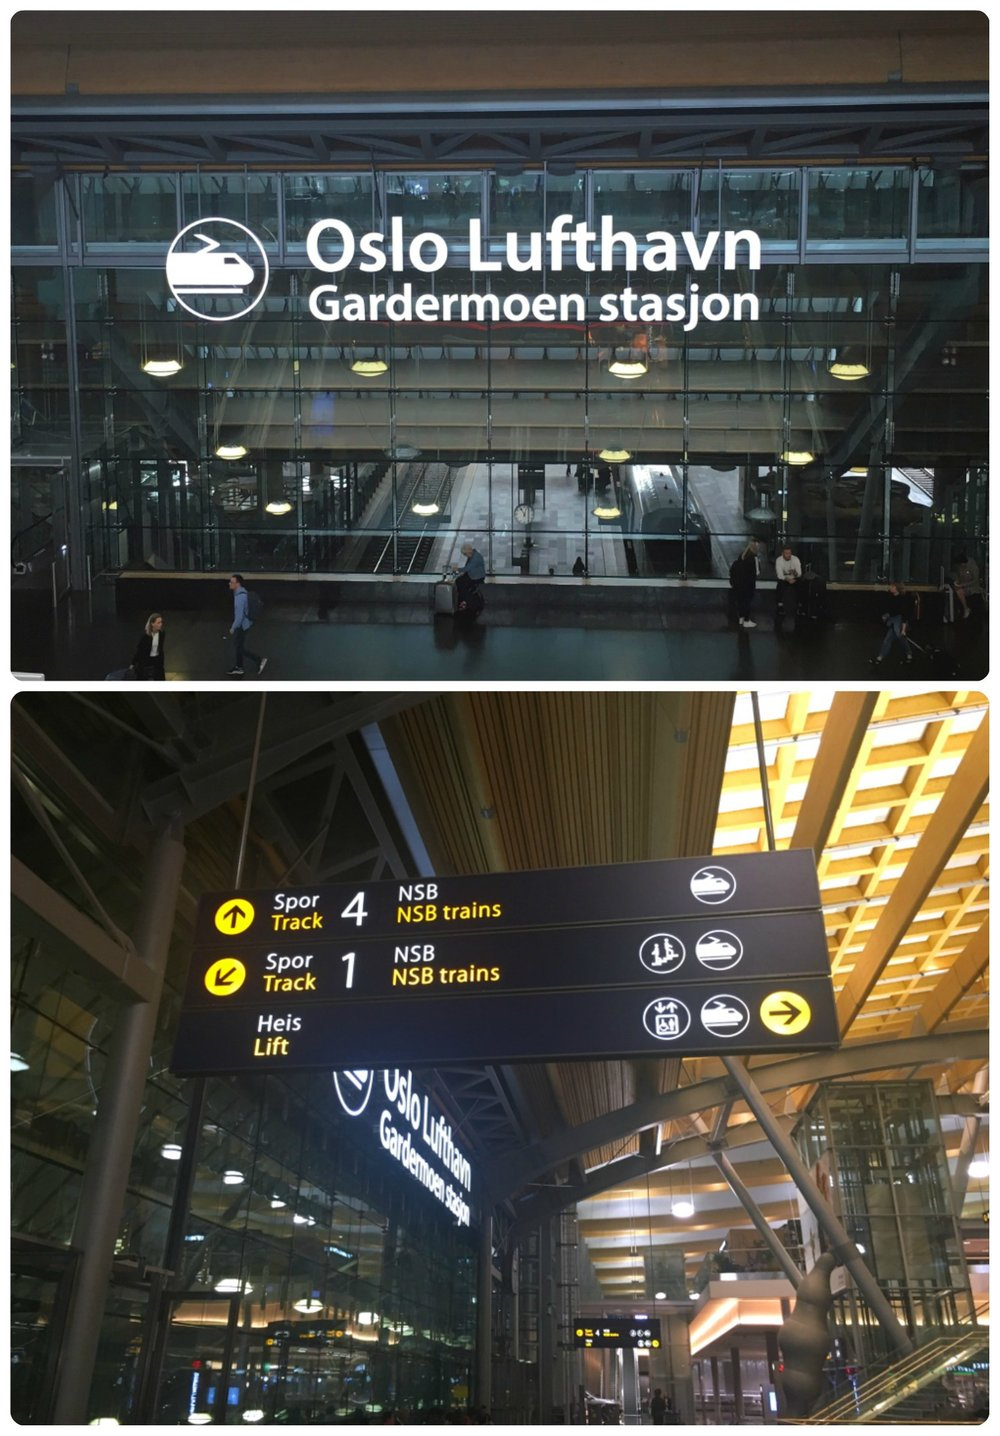 Top to bottom: The front of the train station from the Oslo (OSL) airport as seen from the terminal, a sign within the airport with for the NSB train platforms (Spor or Track).